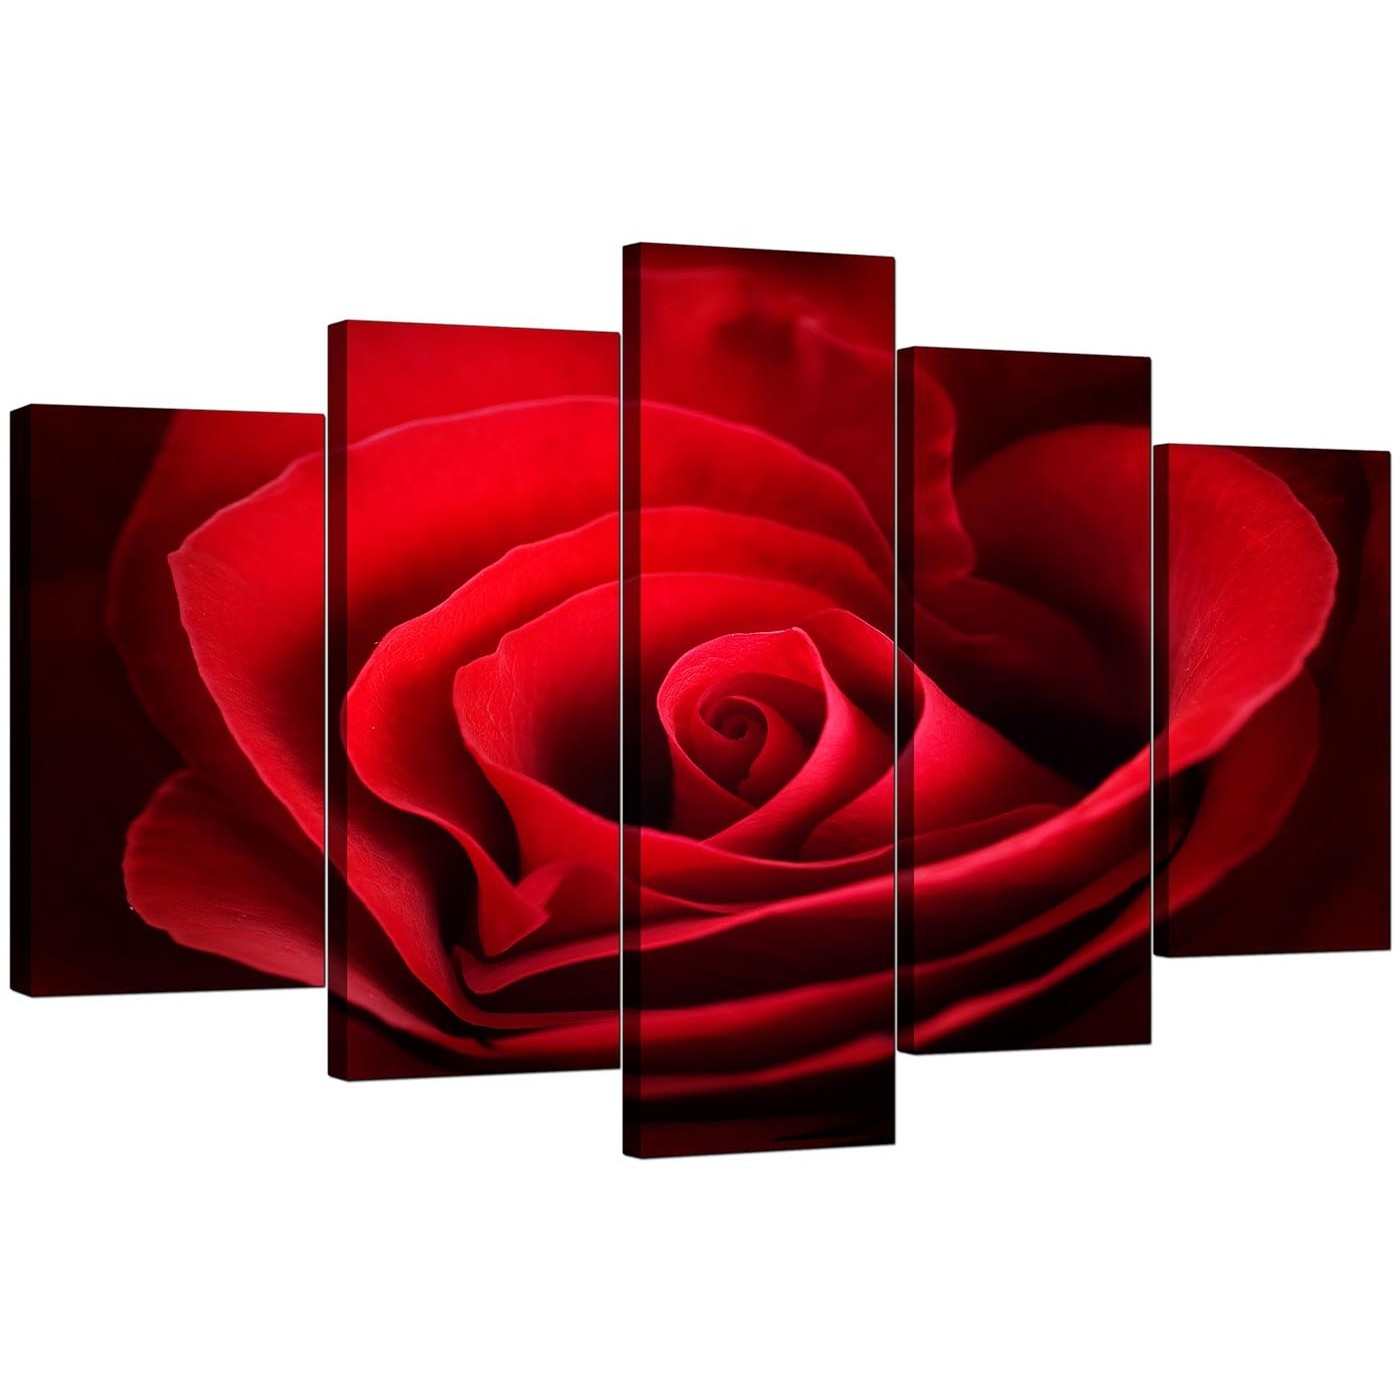 Extra Large Rose Canvas Wall Art 5 Panel In Red With Regard To Most Recently Released Canvas Wall Art In Red (Gallery 2 of 15)